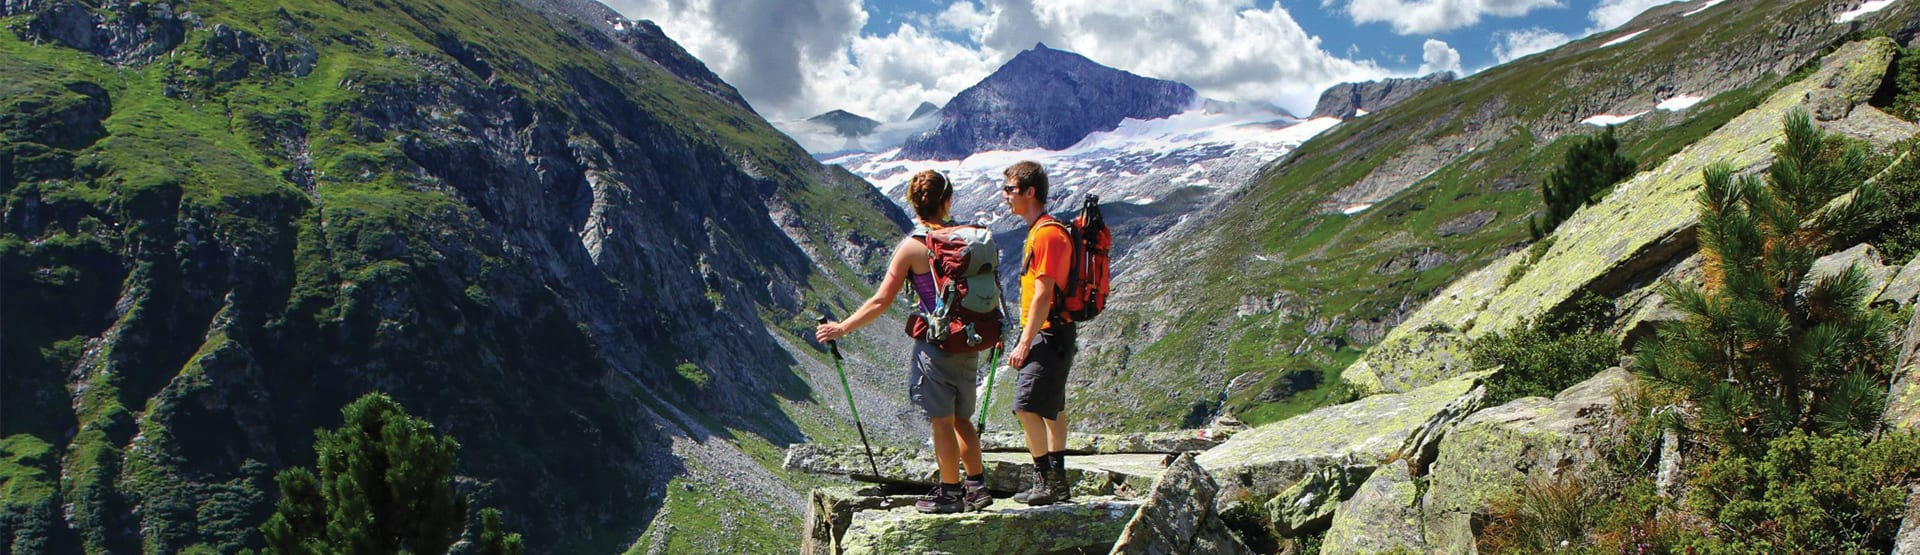 Walking and Hiking in the Hohe Tauern, Austria